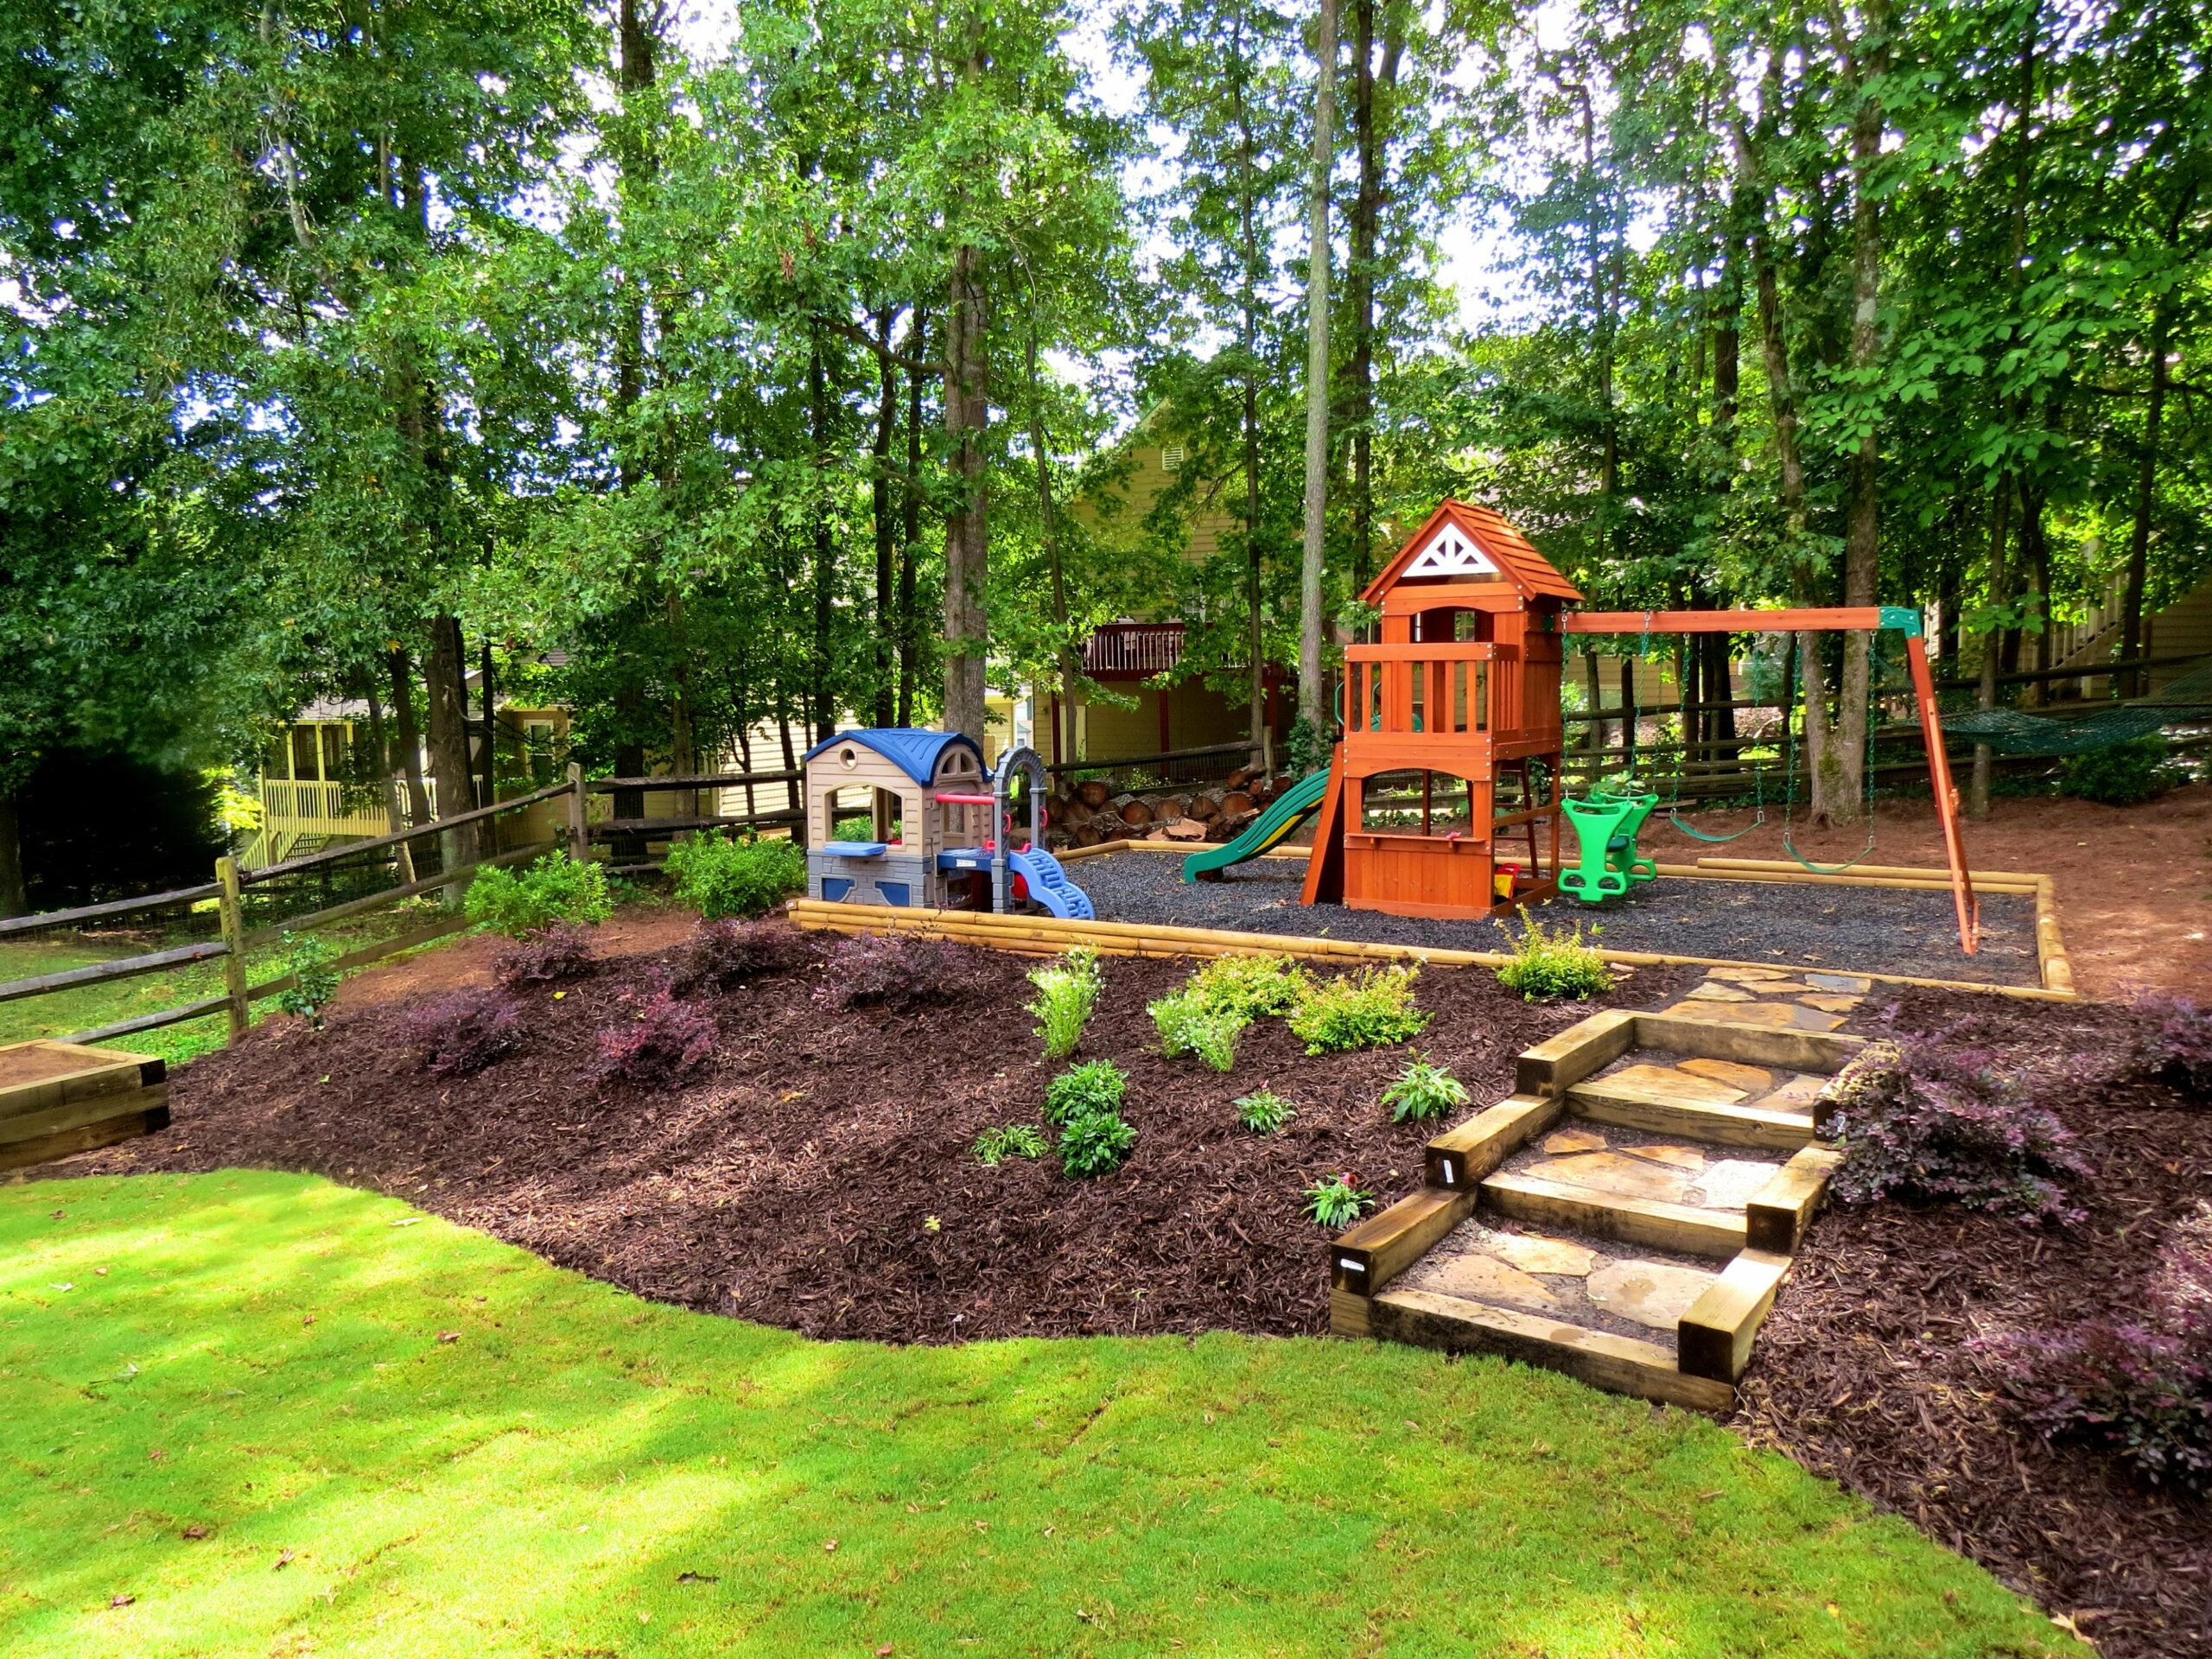 Hill Patio Backyard Ideas Landscape For With Design And Yard ..